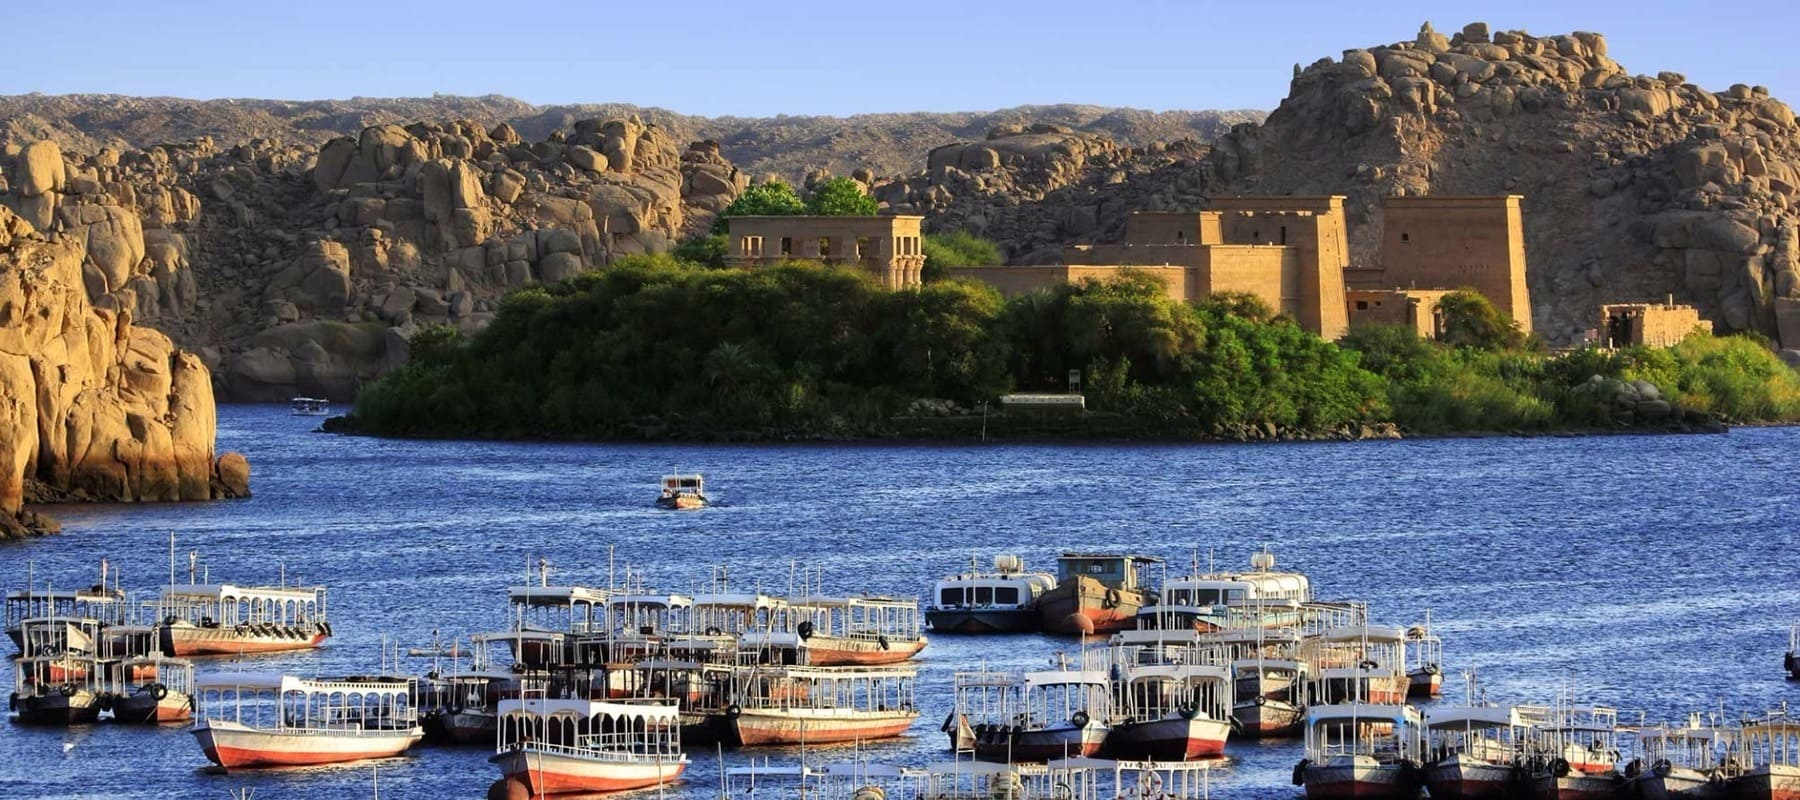 Cairo, Nile Cruise and Sharm El Sheikh Holiday